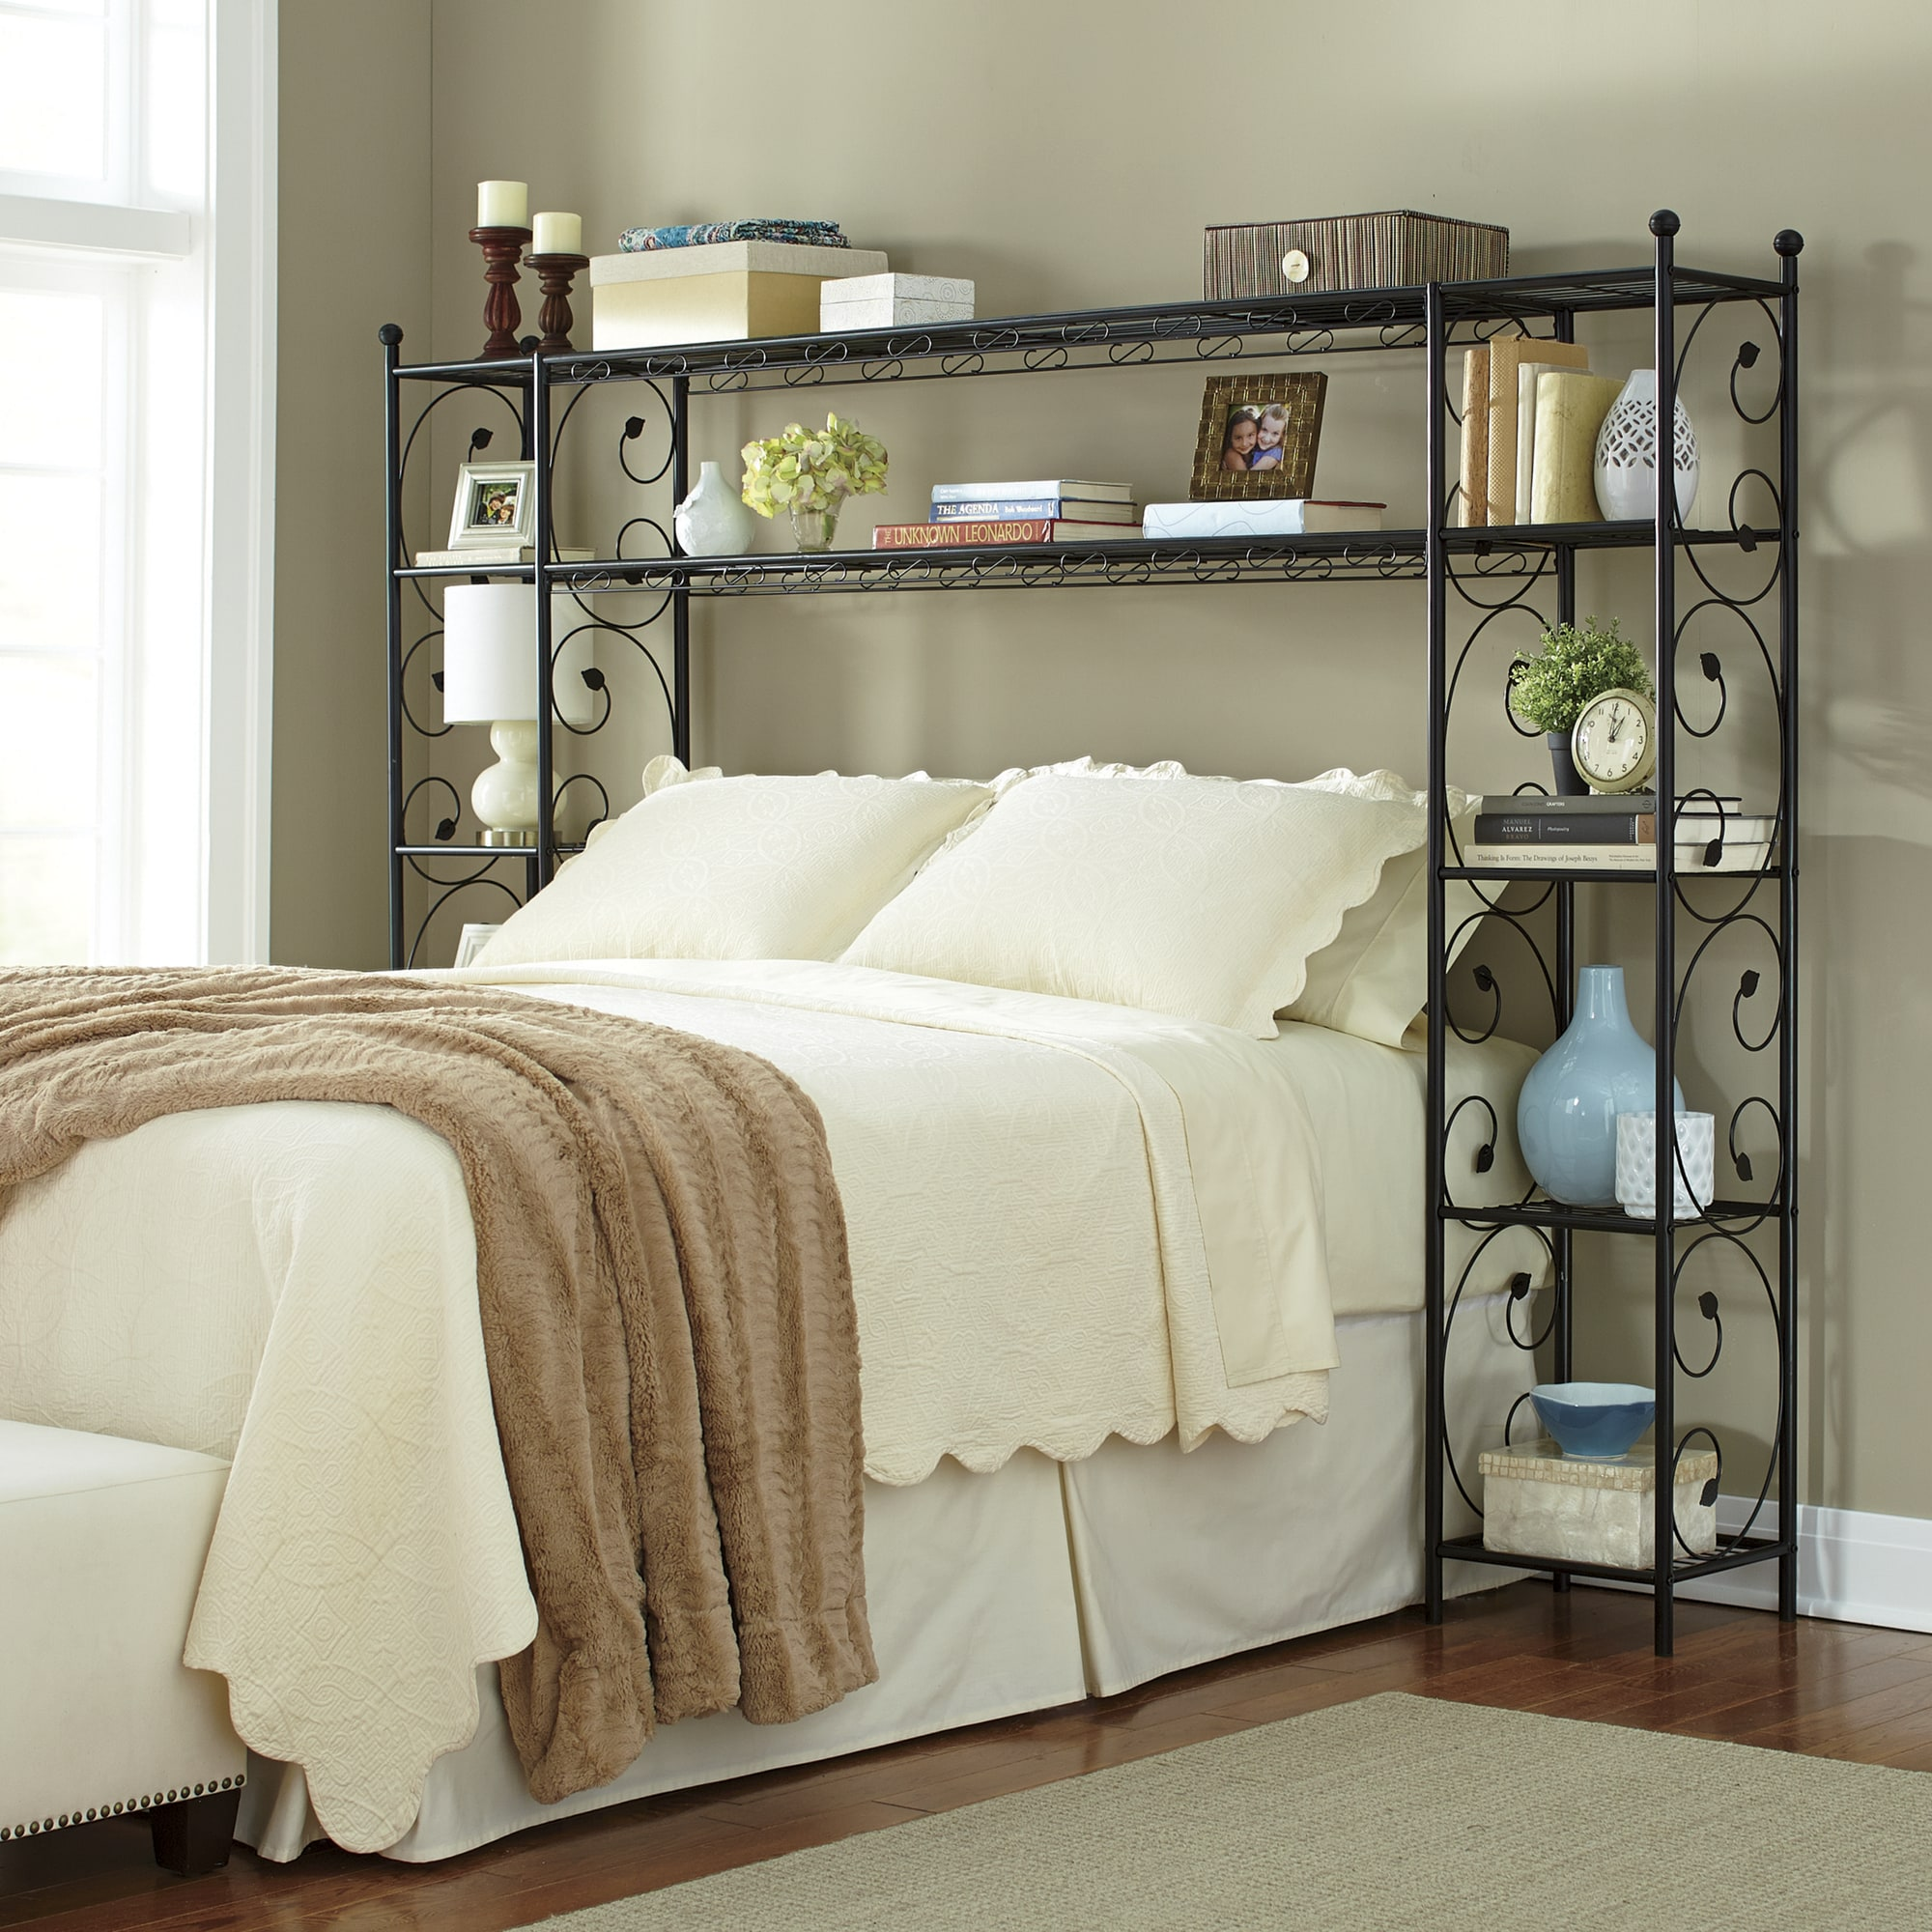 Bed Headboards   Bed Frames with Storage   Ginny s Leaf Scroll Headboard Shelving